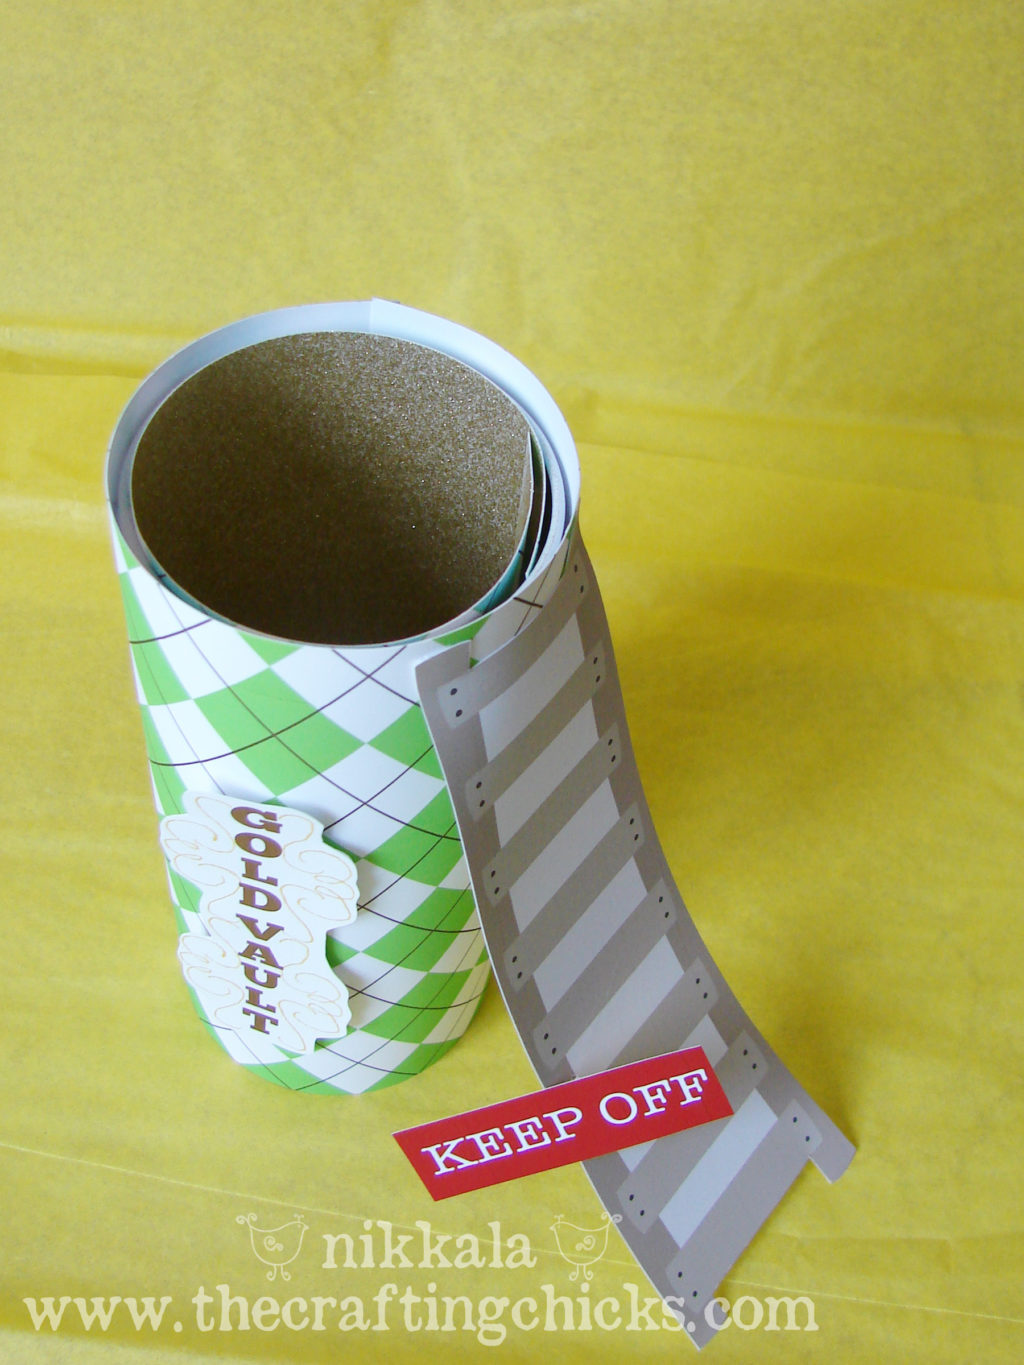 Leprechaun trap made with scrabbook paper and an old chip can.